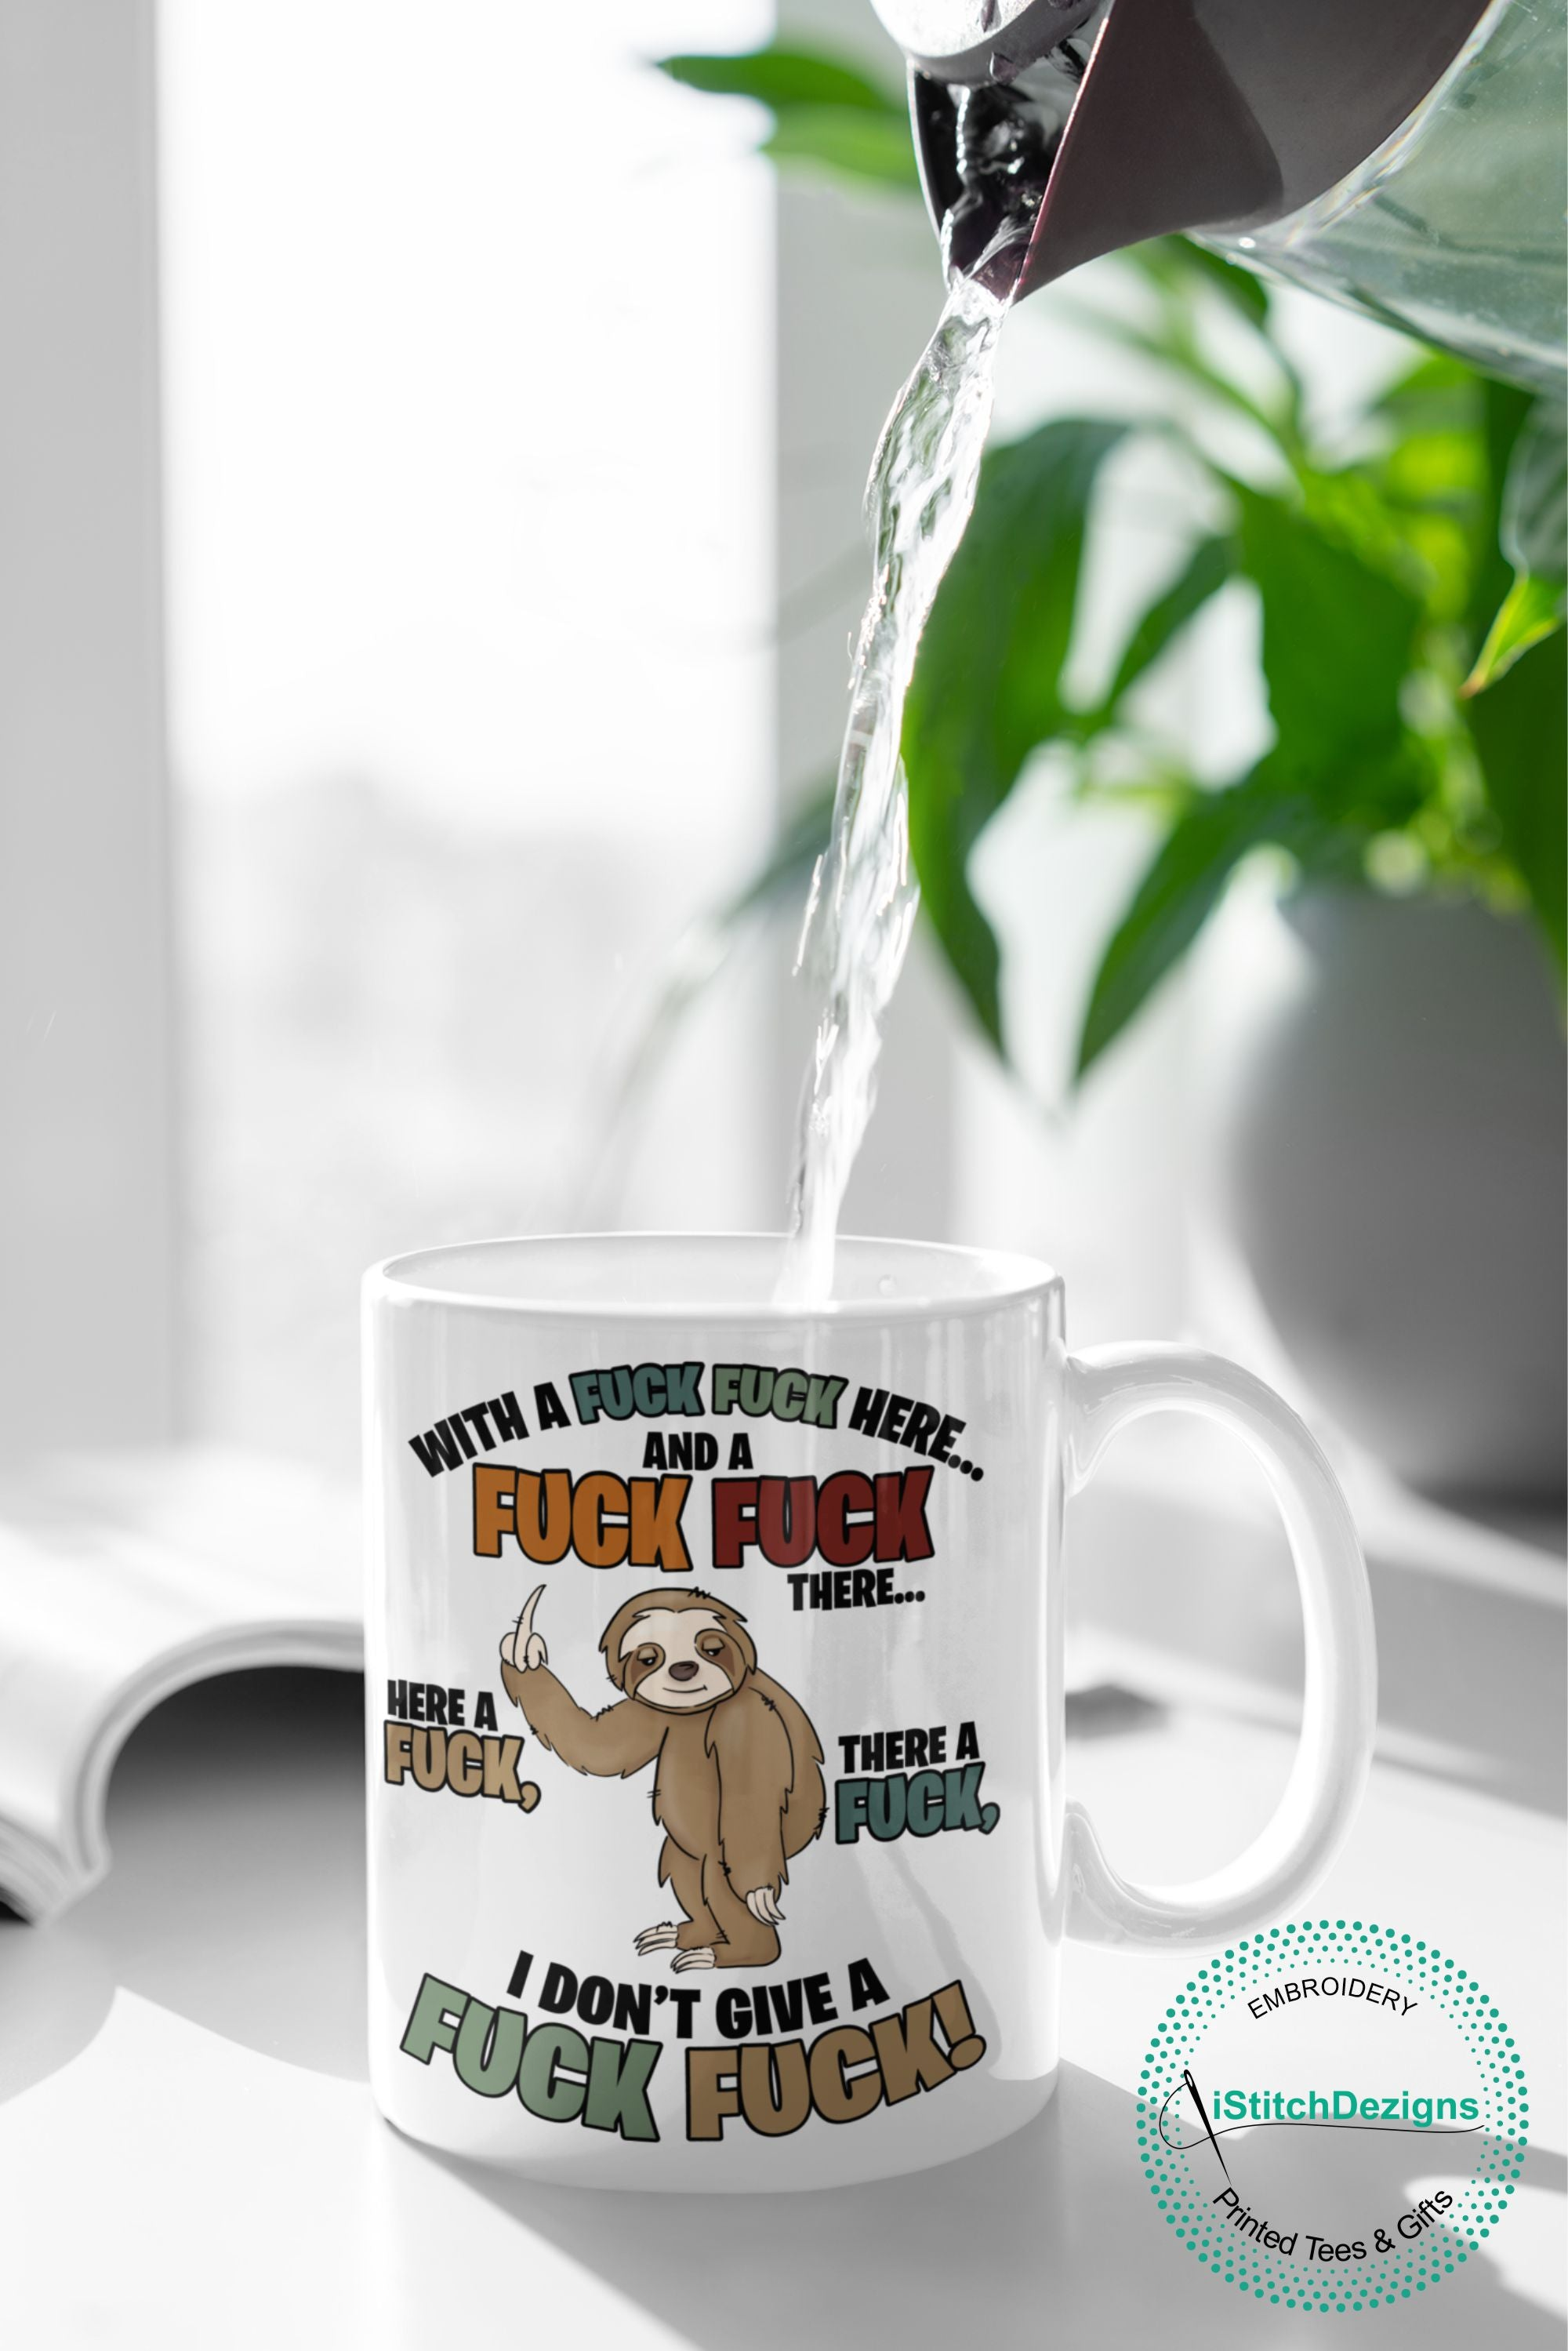 Rude Mugs With A Fuck Fuck Here, Here A Fuck, There A Fuck, I don't Give A Fuck Standing Sloth White Mug.